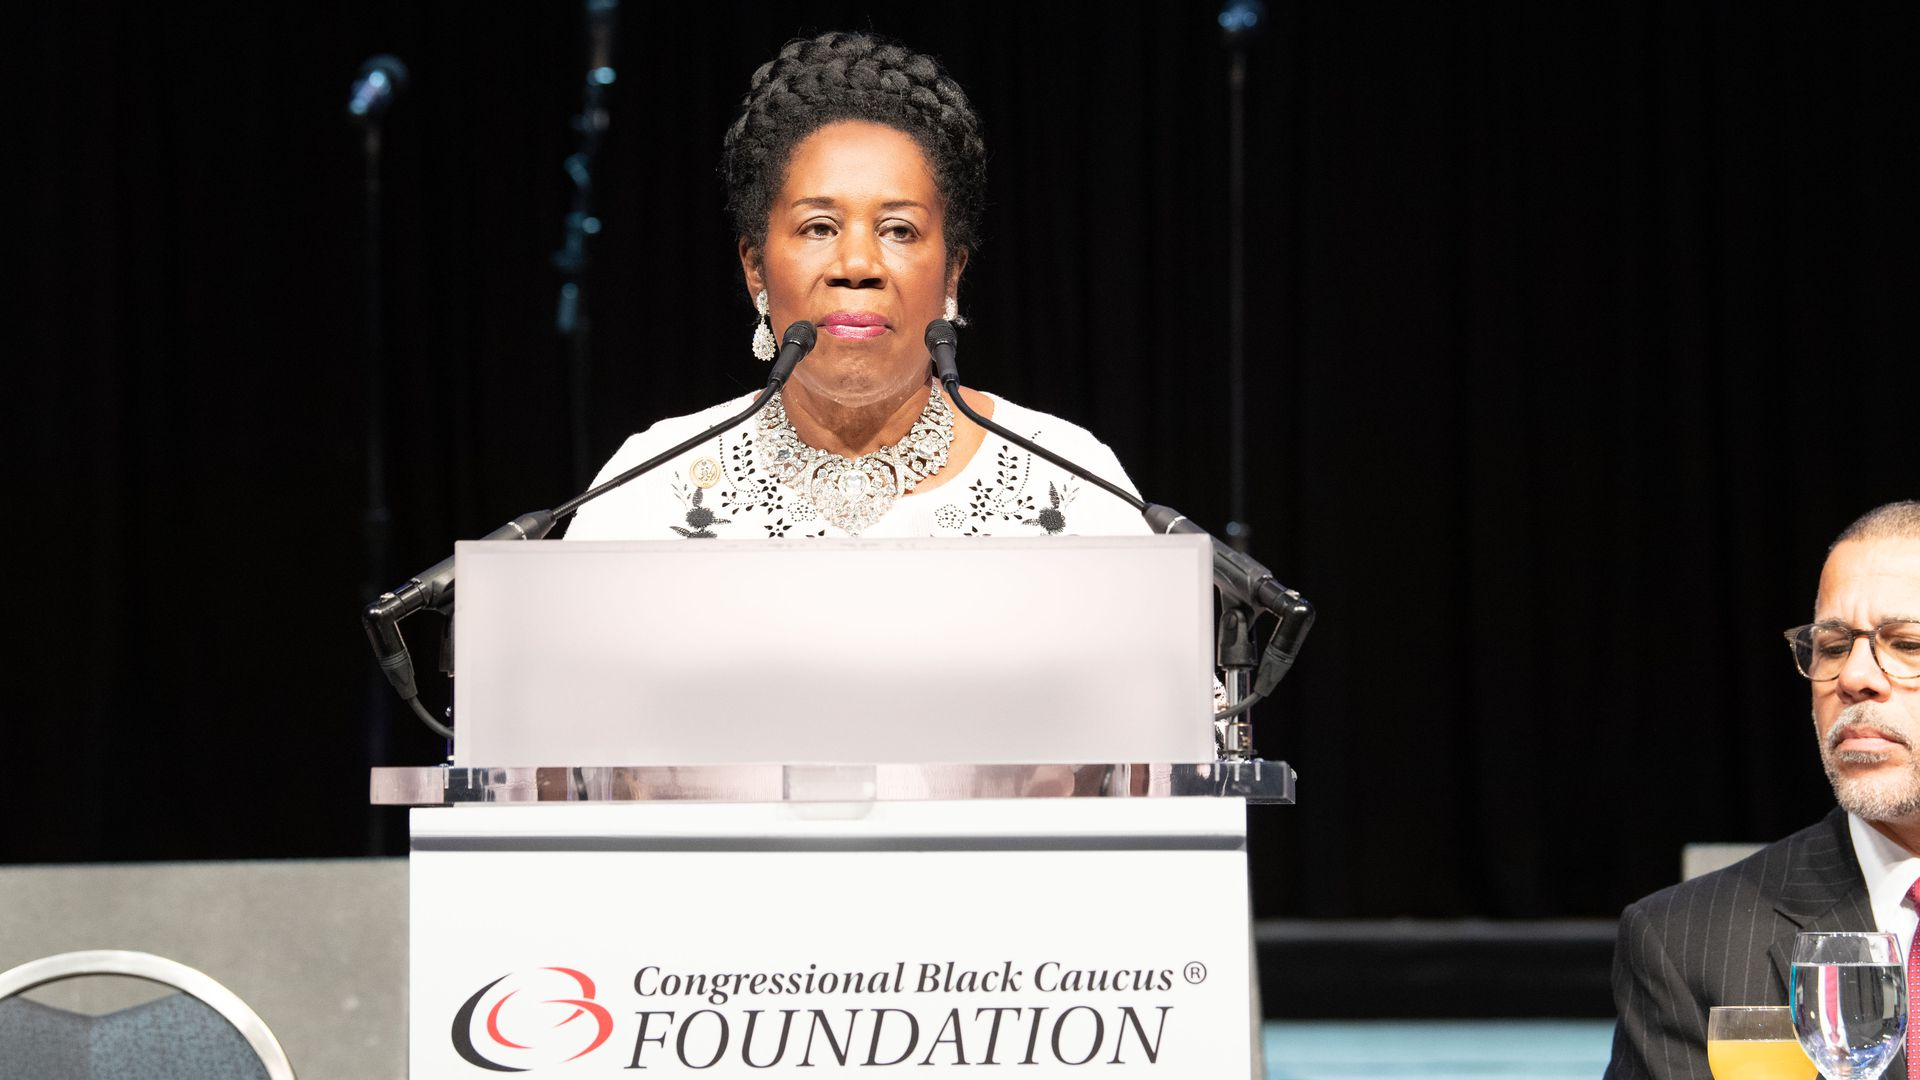 Sheila Jackson Lee at CBC Foundation podium in all white.